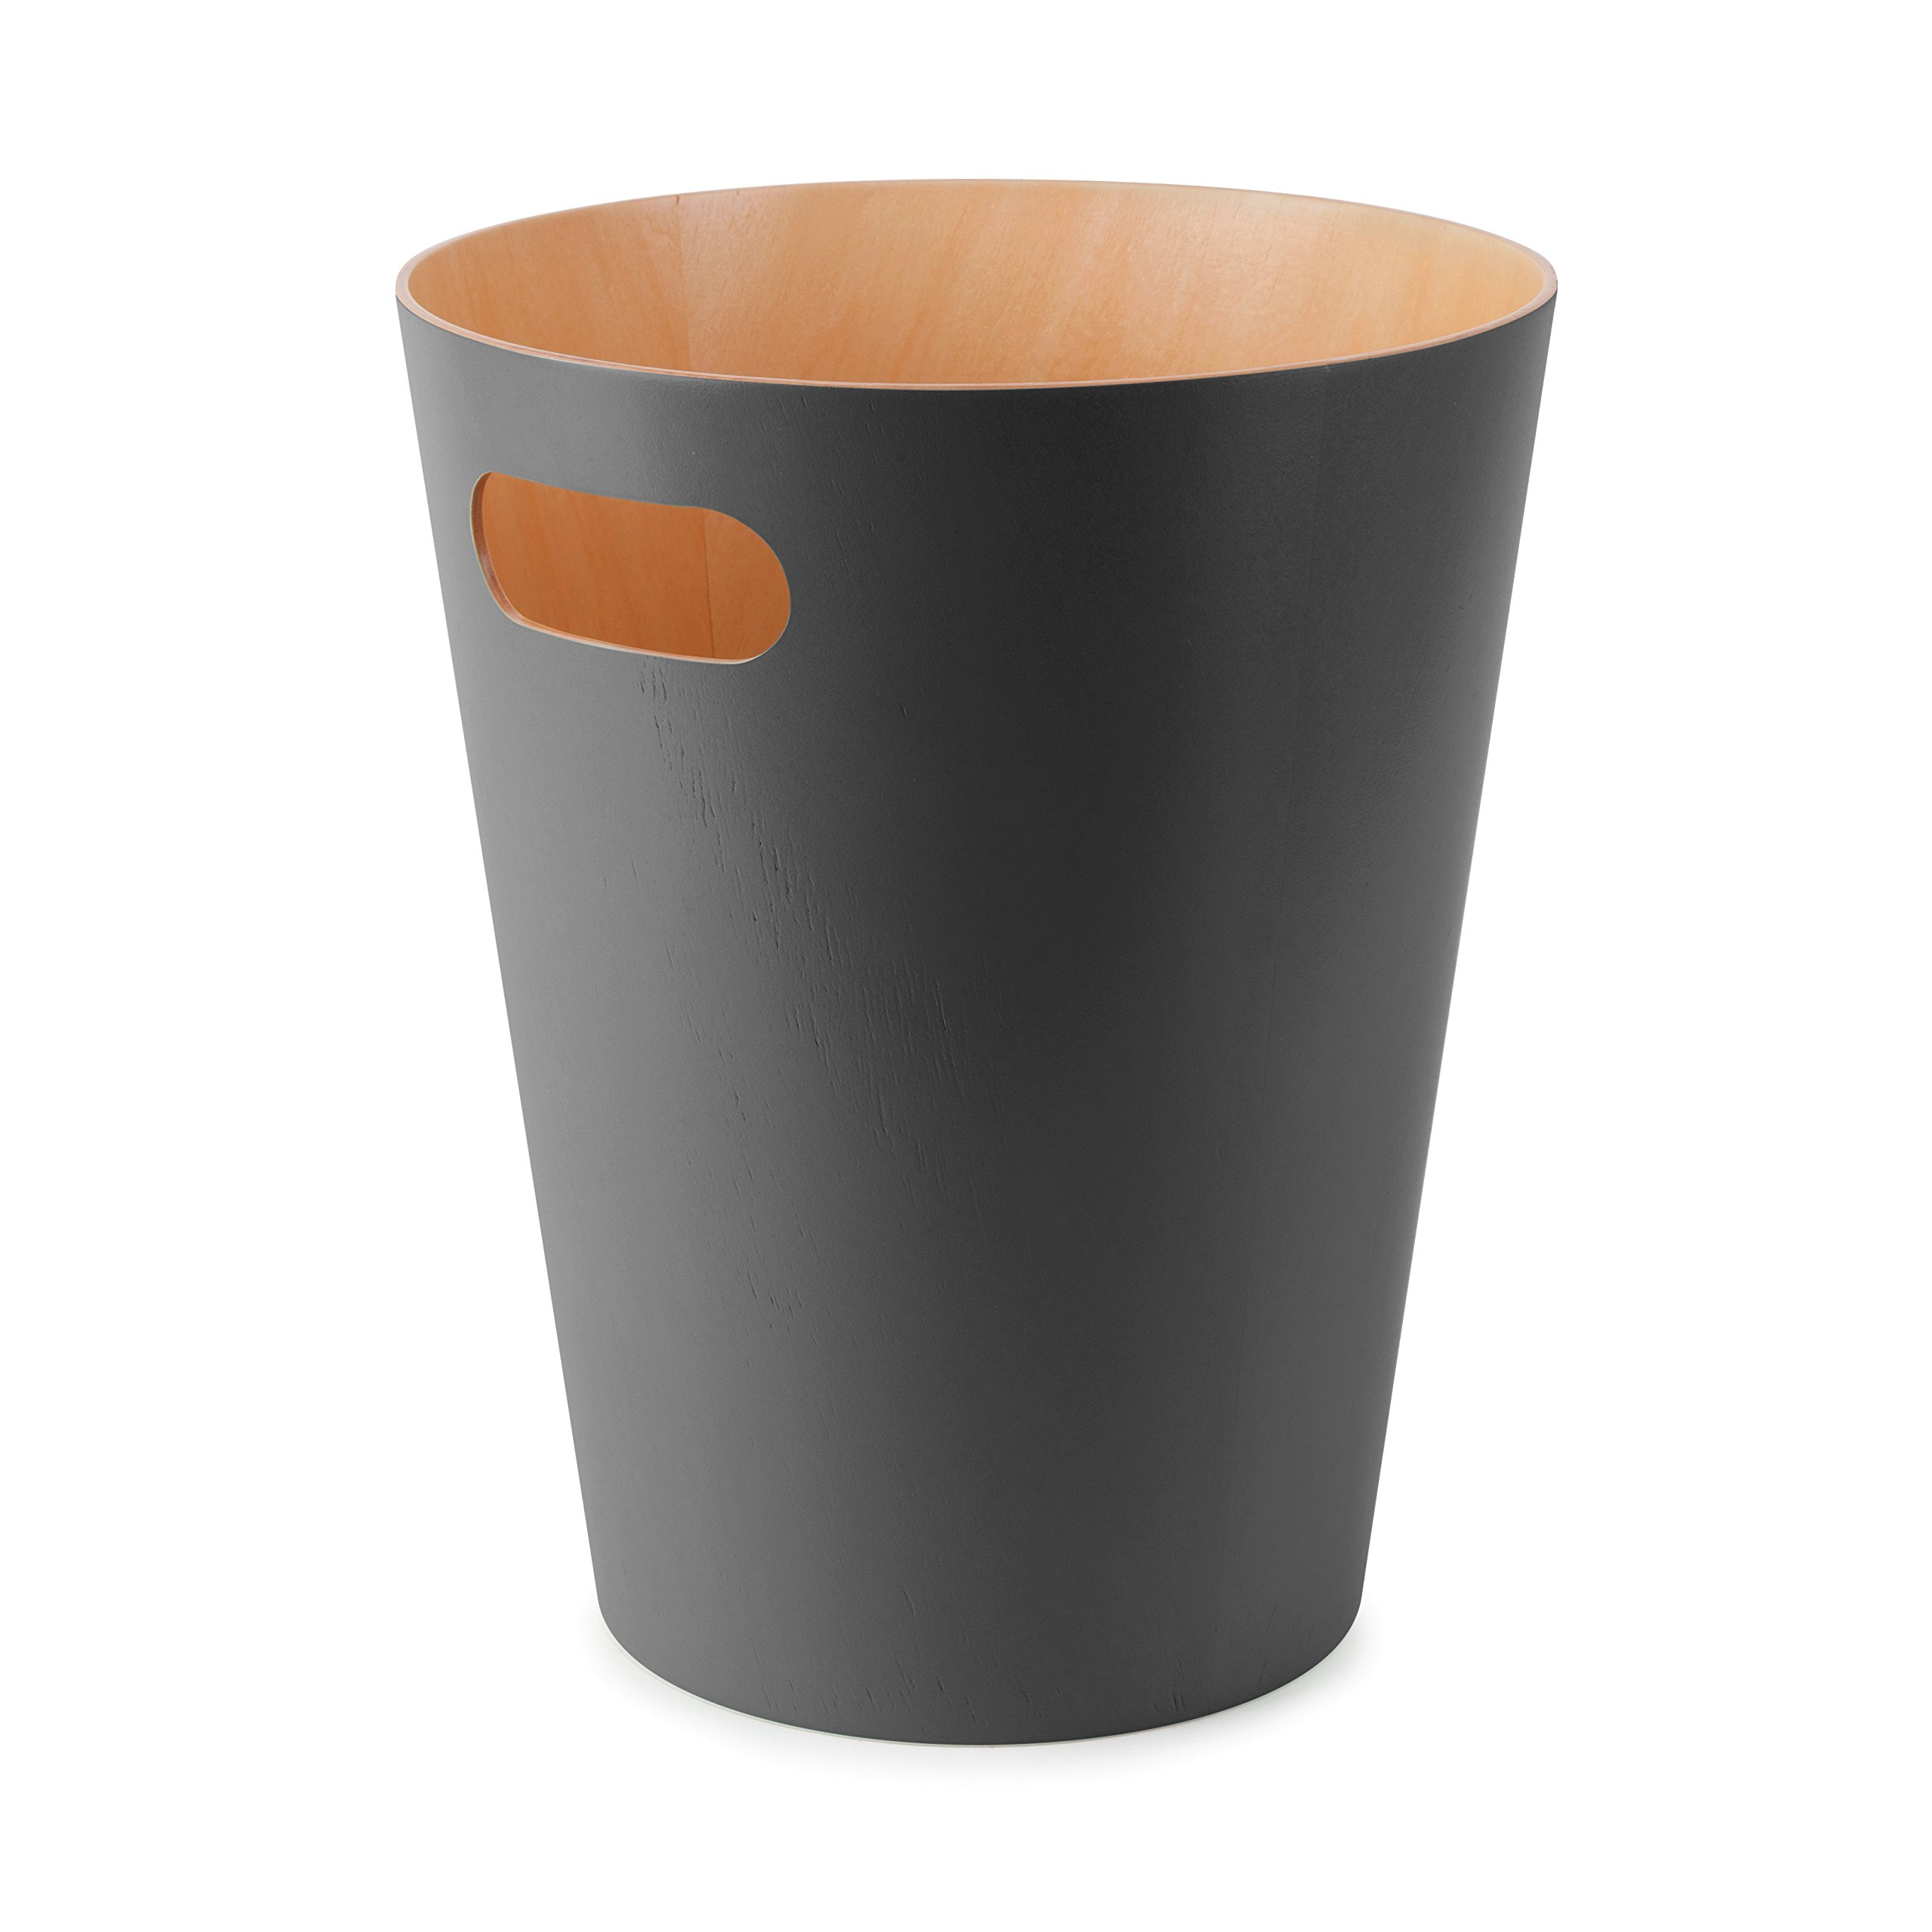 Umbra, Charcoal Woodrow, 2 Gallon Modern Wooden Trash Can Wastebasket or Recycling Bin for Home or Office by Umbra